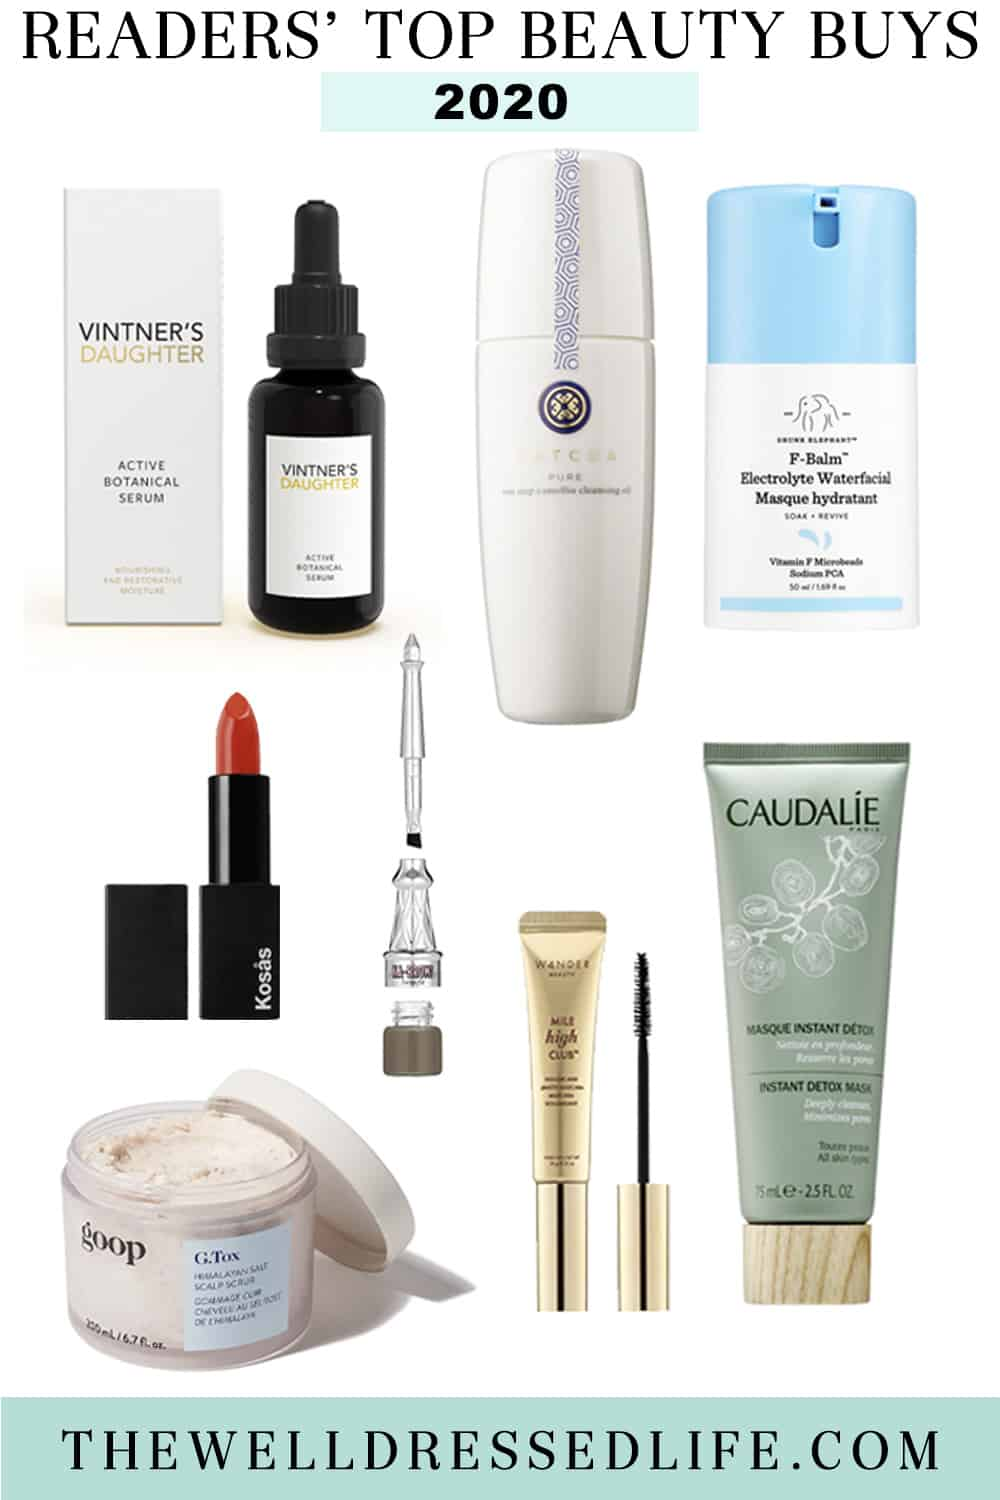 Reader Favorite Beauty Buys of 2020